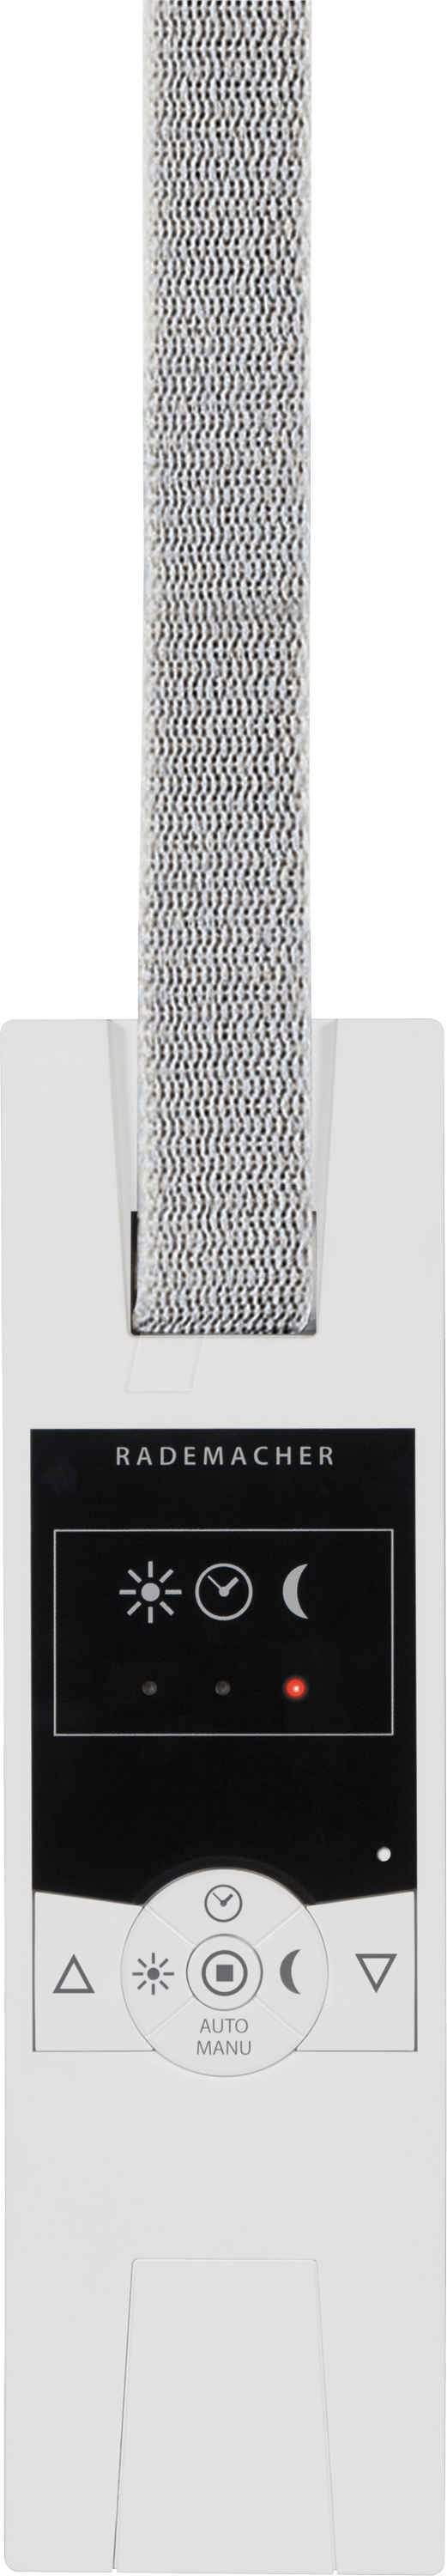 Rademacher RollotronProStandard  Gurtwickler, uP